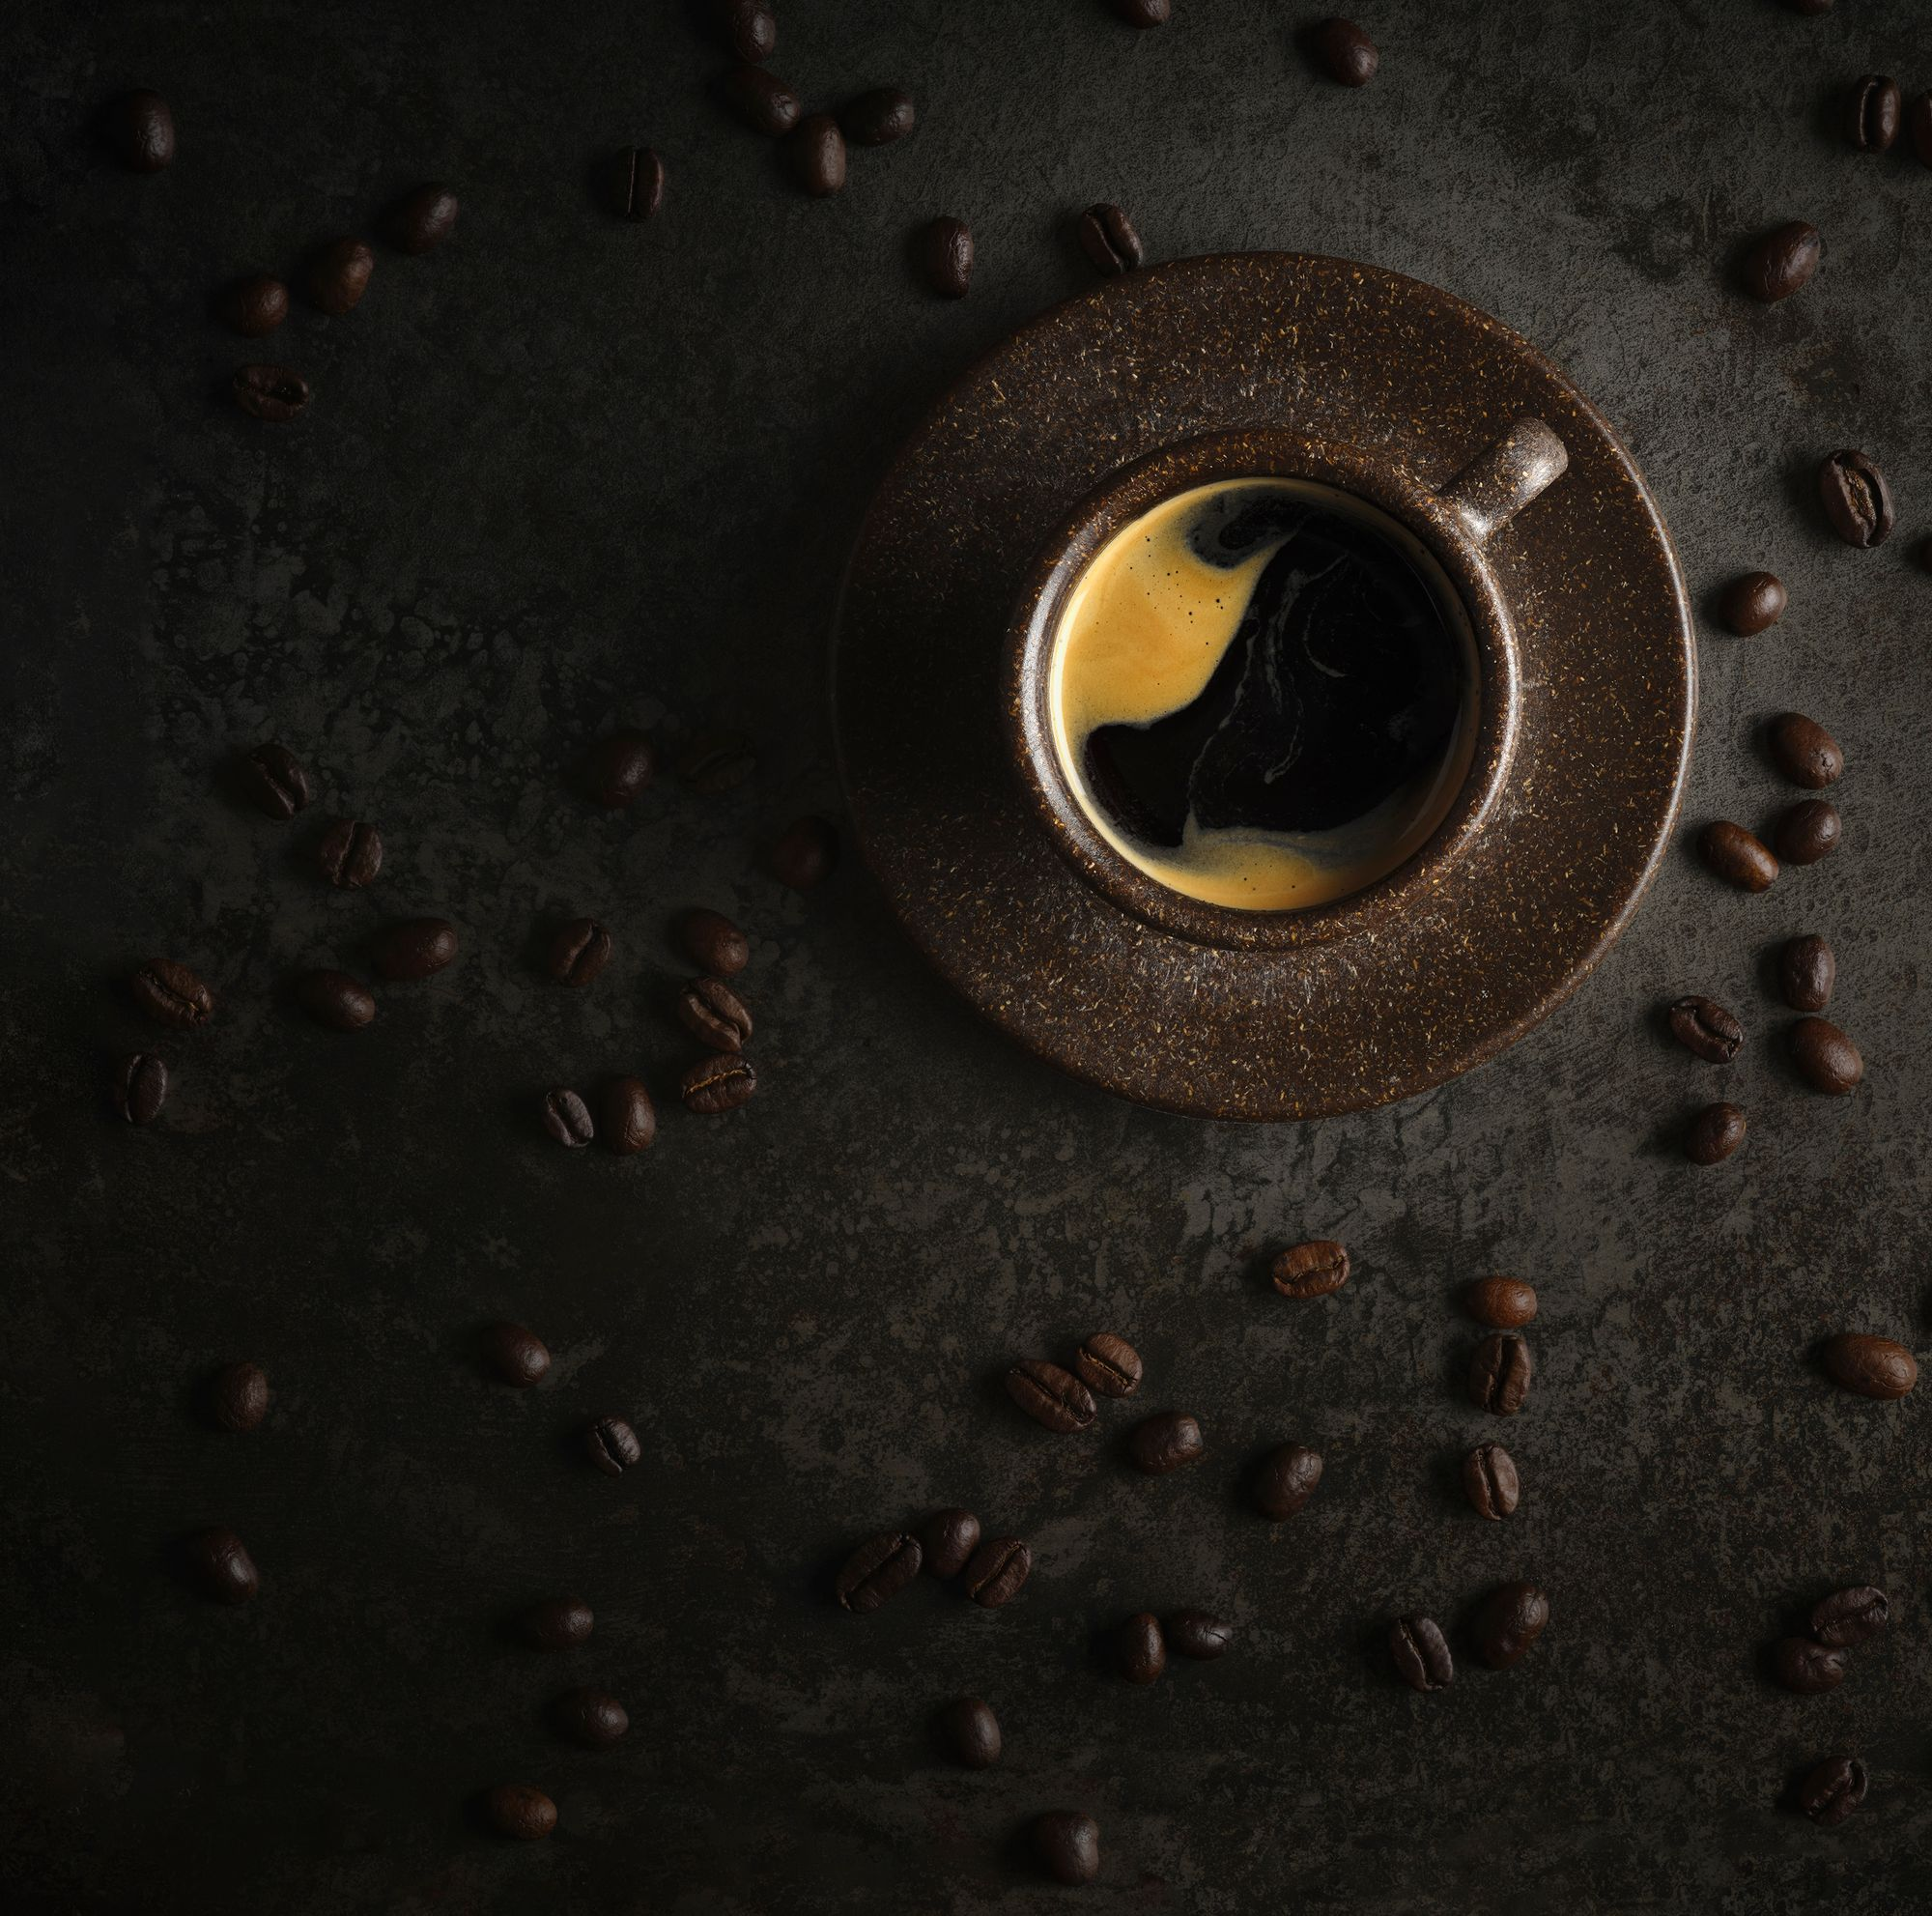 Overhead image of black coffee with whole beans in the background